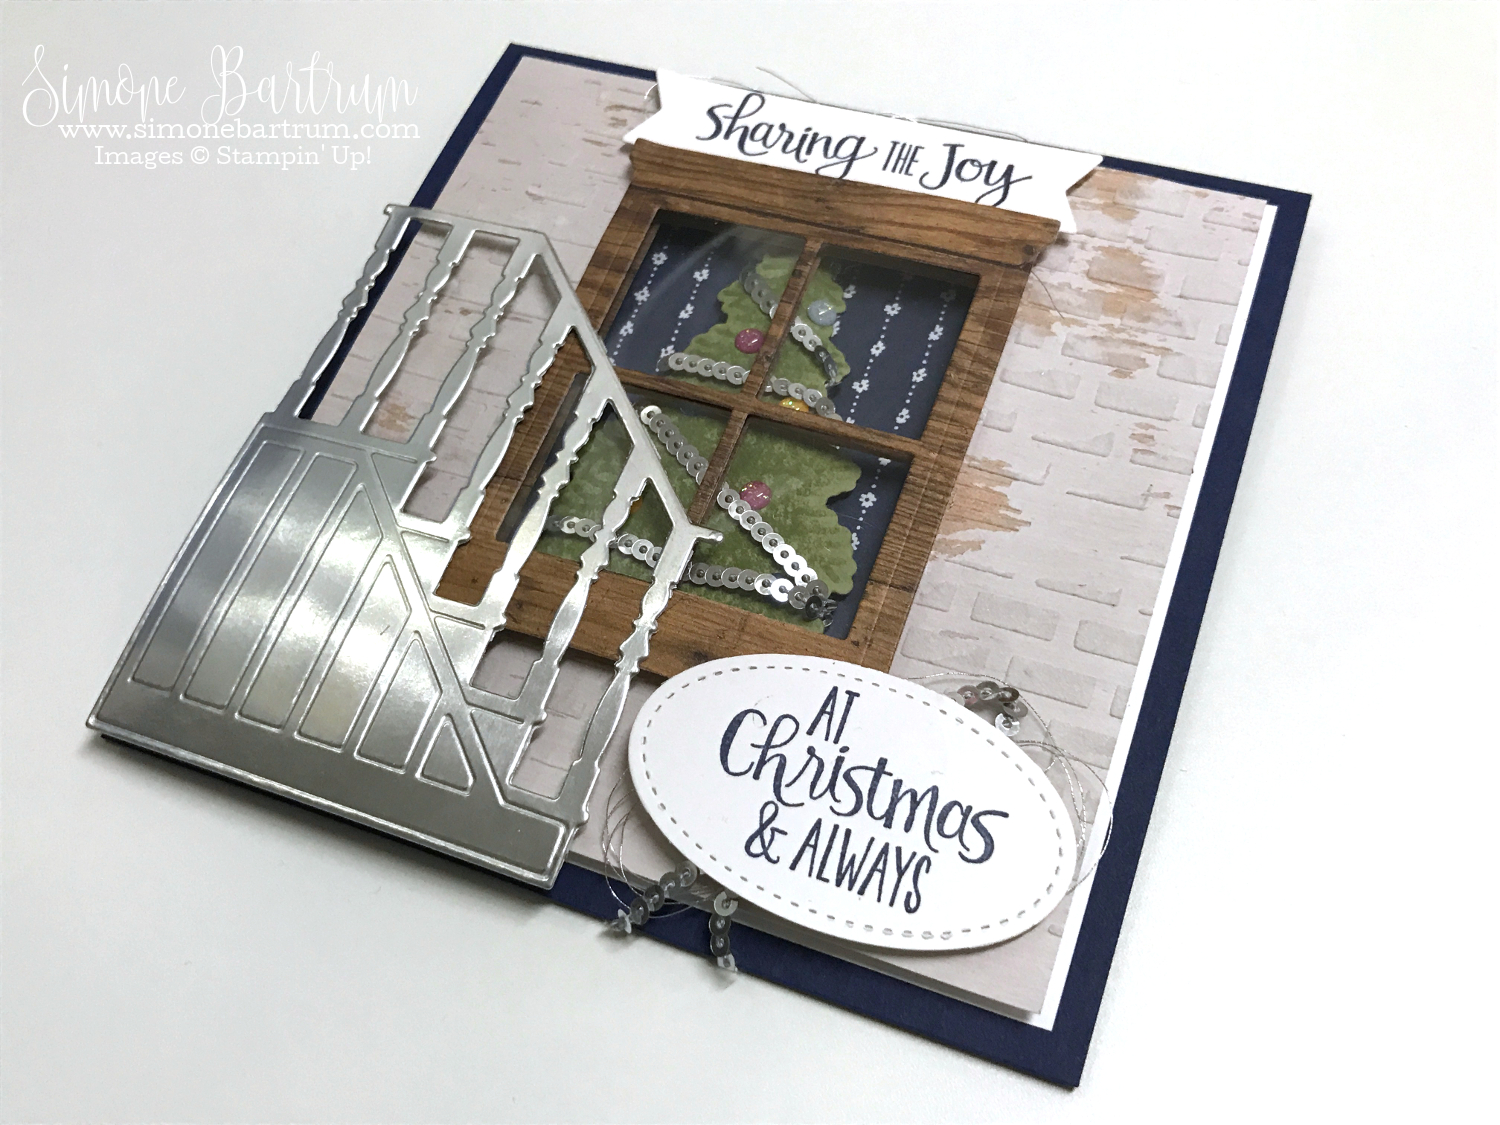 Ready For Christmas Staircase bundle by Stampin' Up! #2